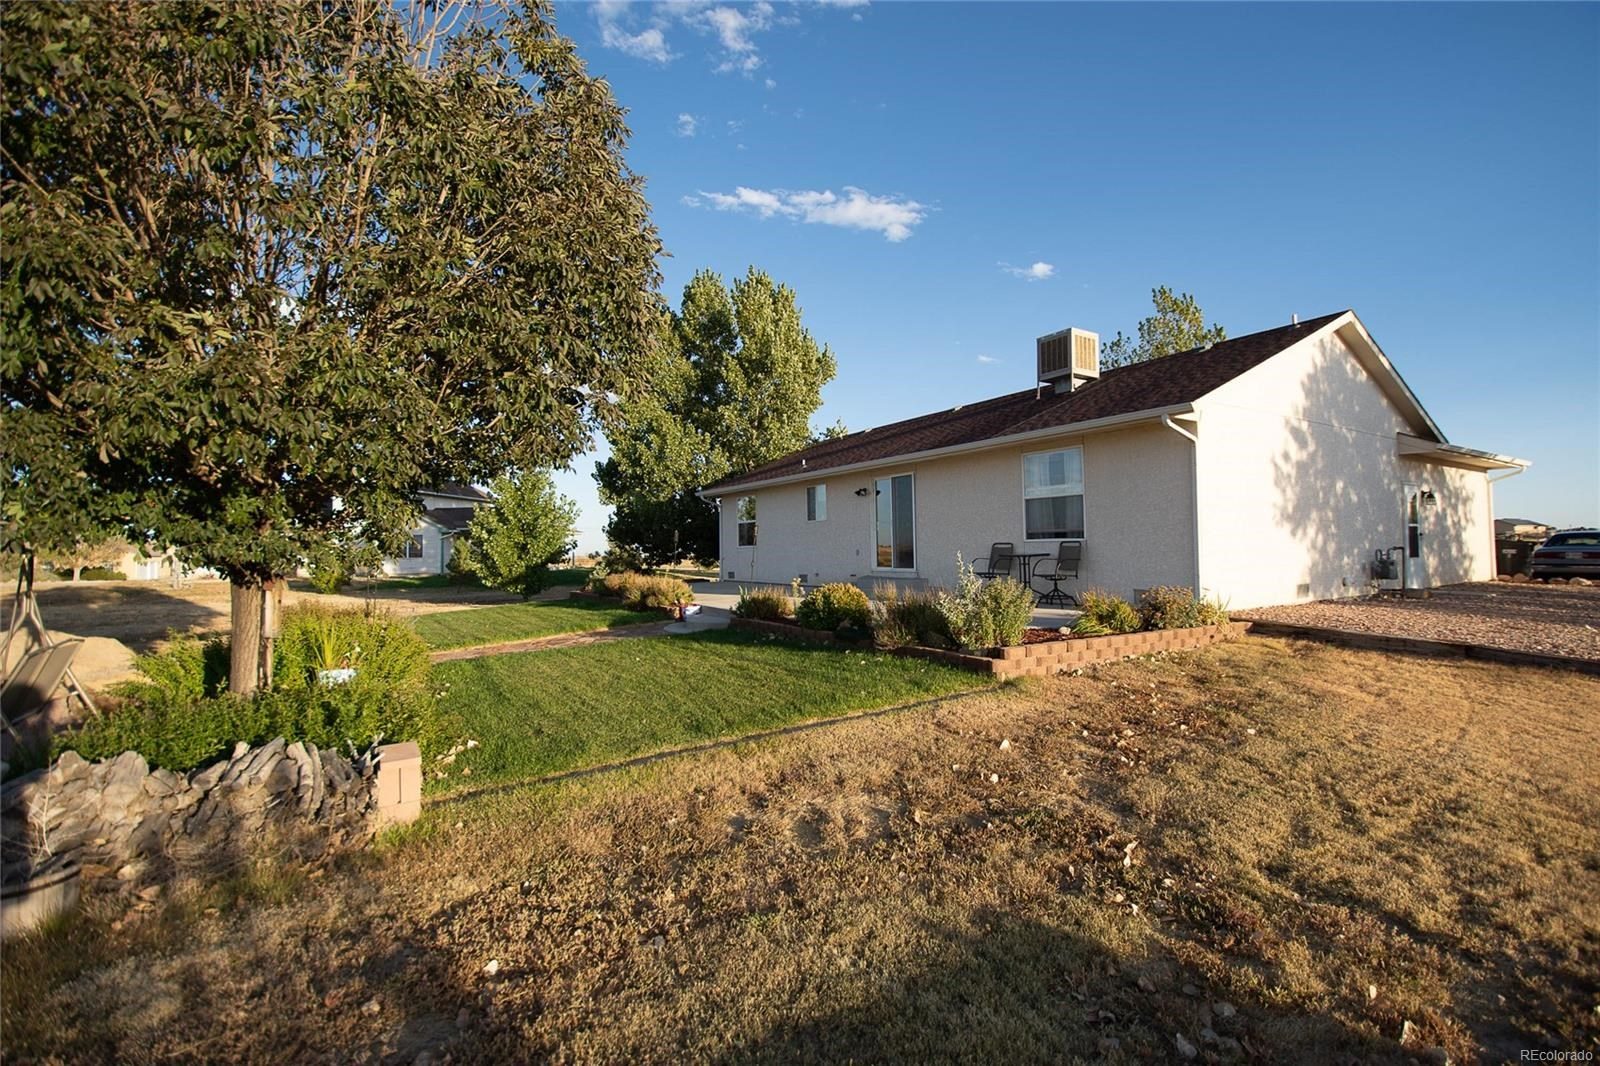 MLS# 2303742 - 12 - 221 W Bywood Drive, Pueblo West, CO 81007